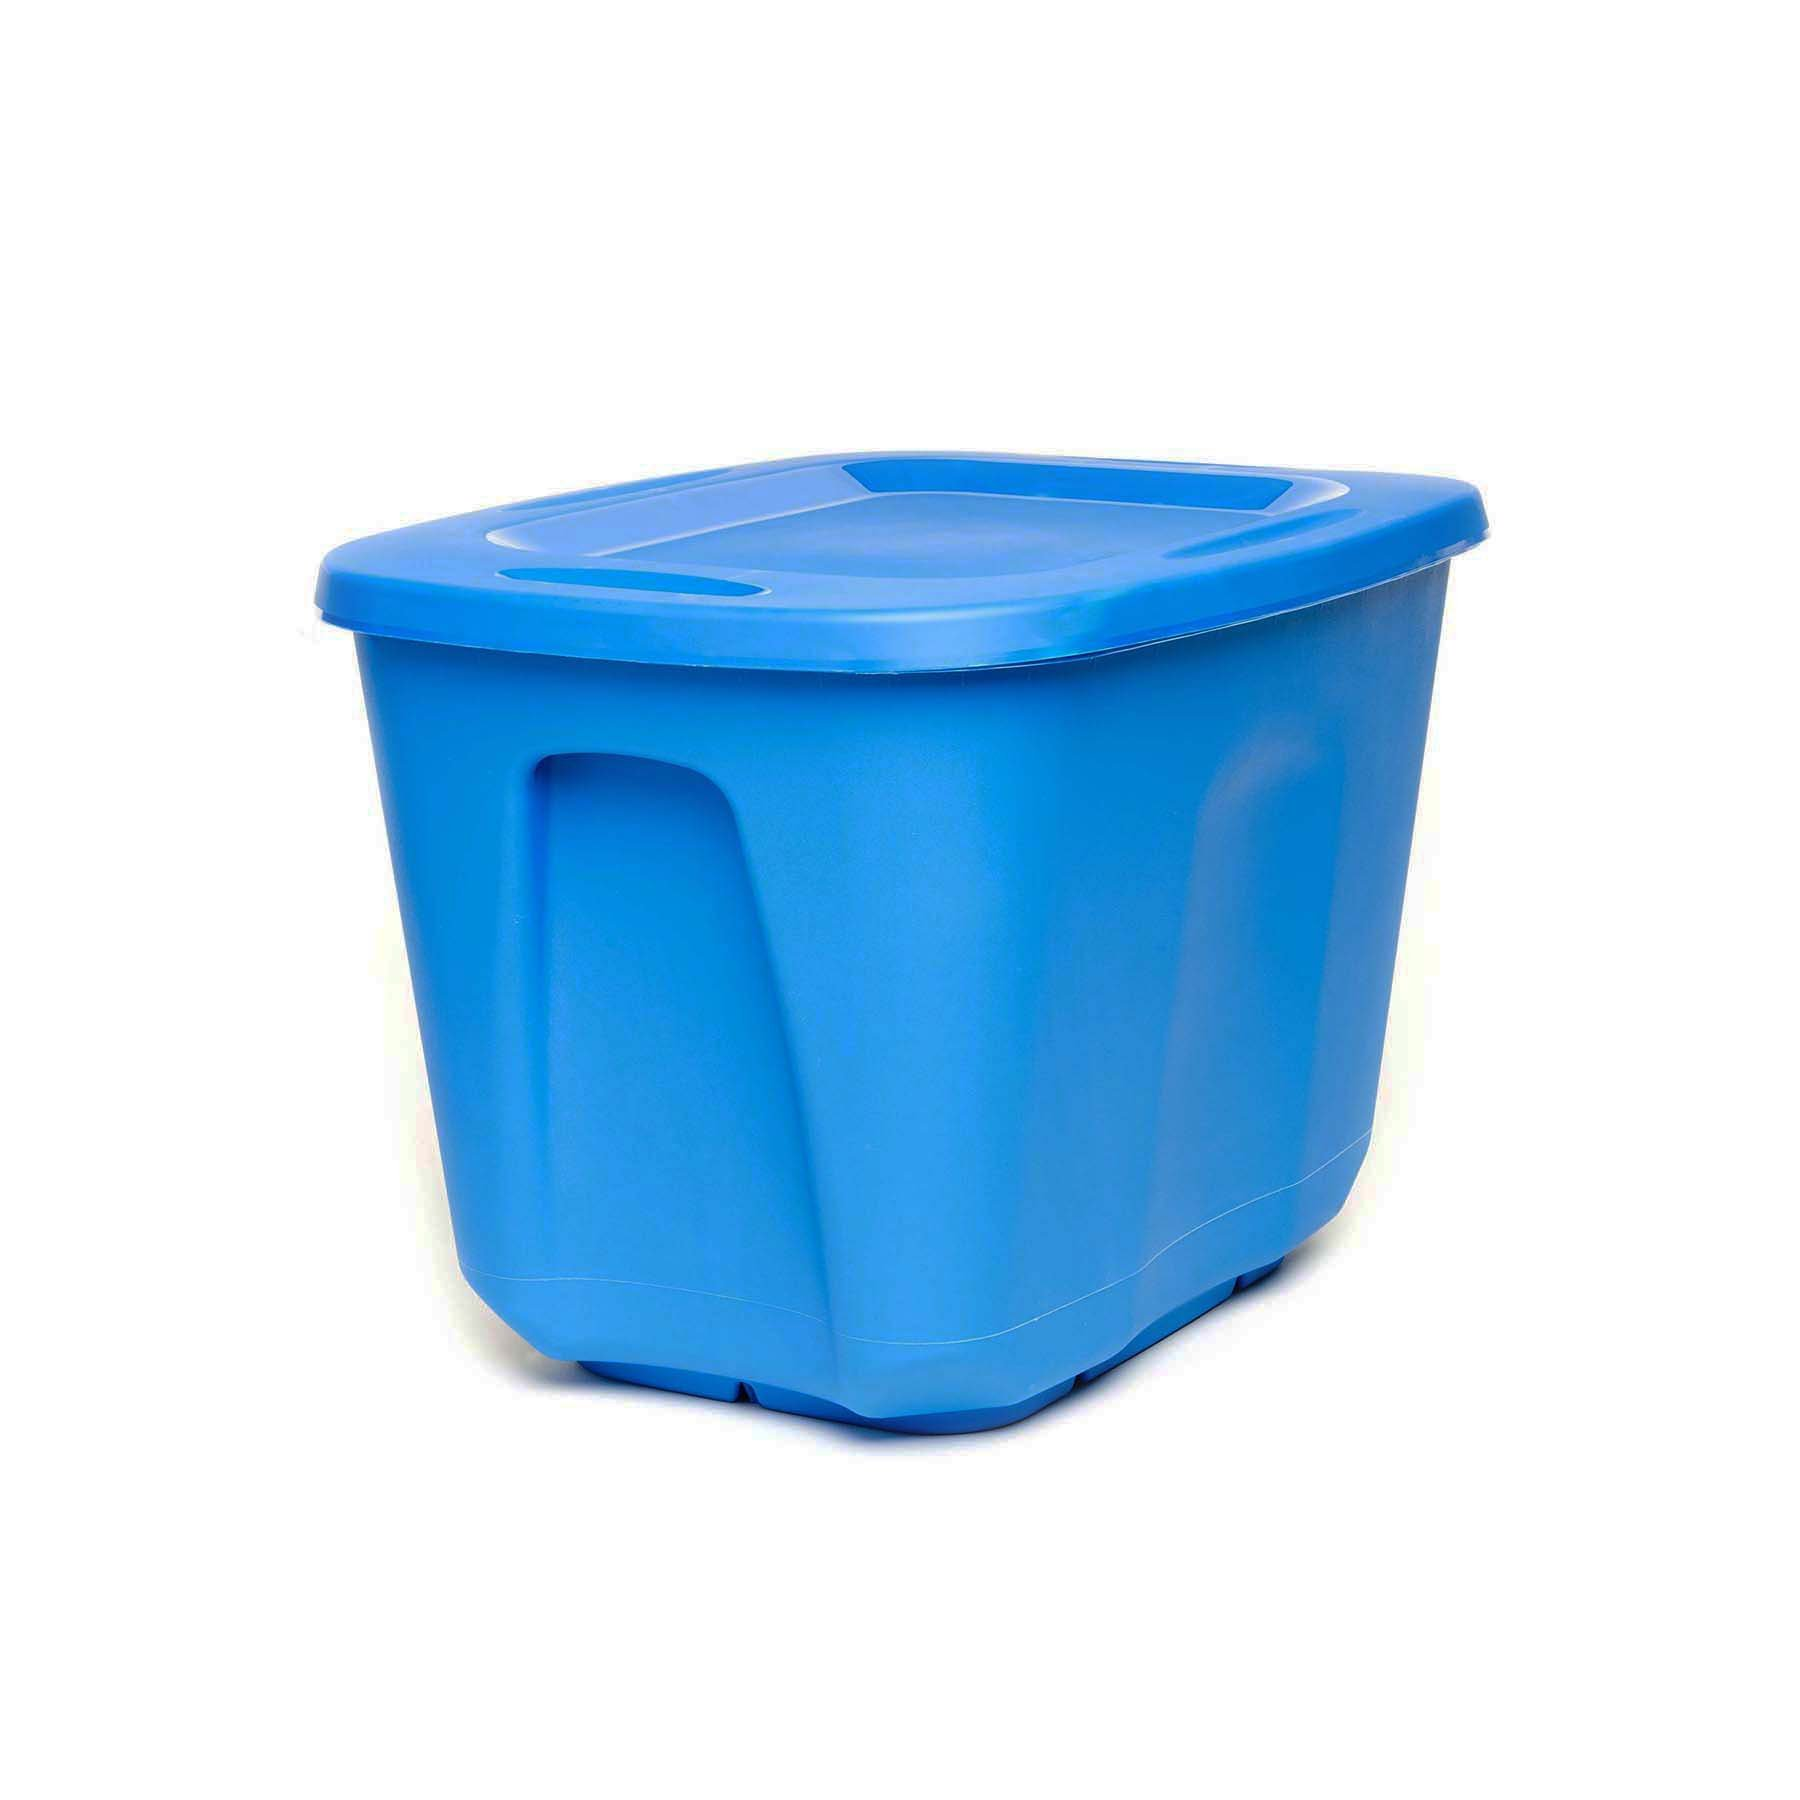 Homz Plastic Storage Tote with Lid, 10 Gallon, Blue, Stackable, 5-Pack by Homz